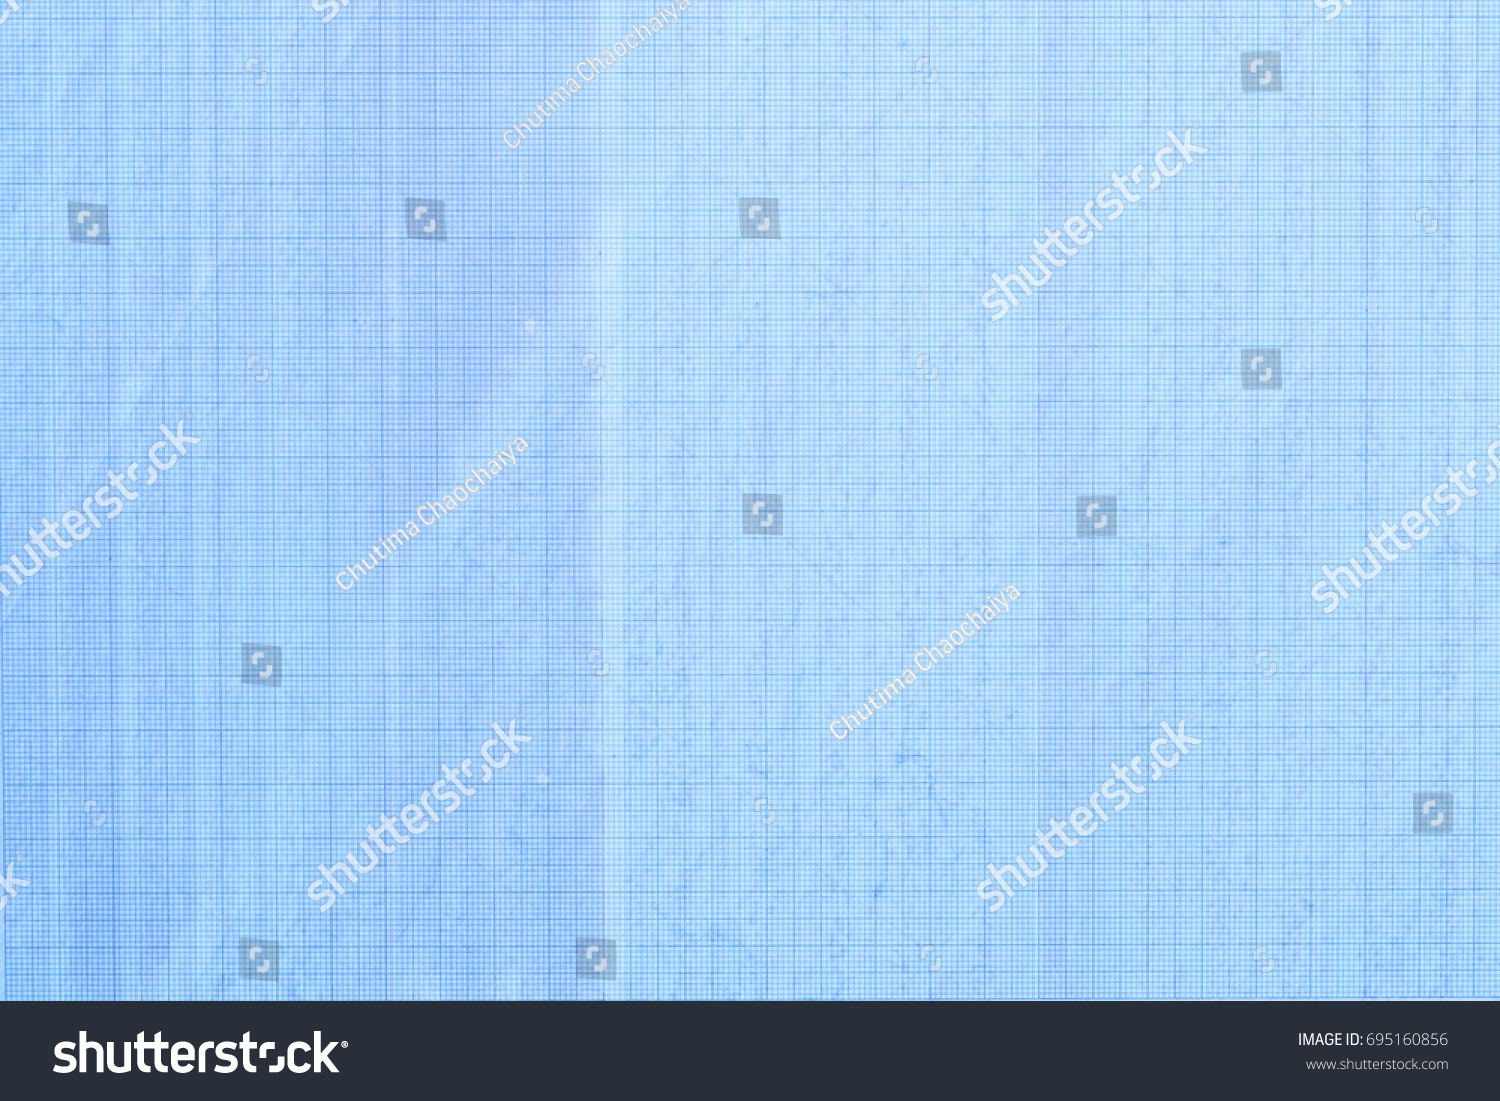 Old graph blueprint paper texture background stock photo royalty old graph or blueprint paper texture and background malvernweather Gallery